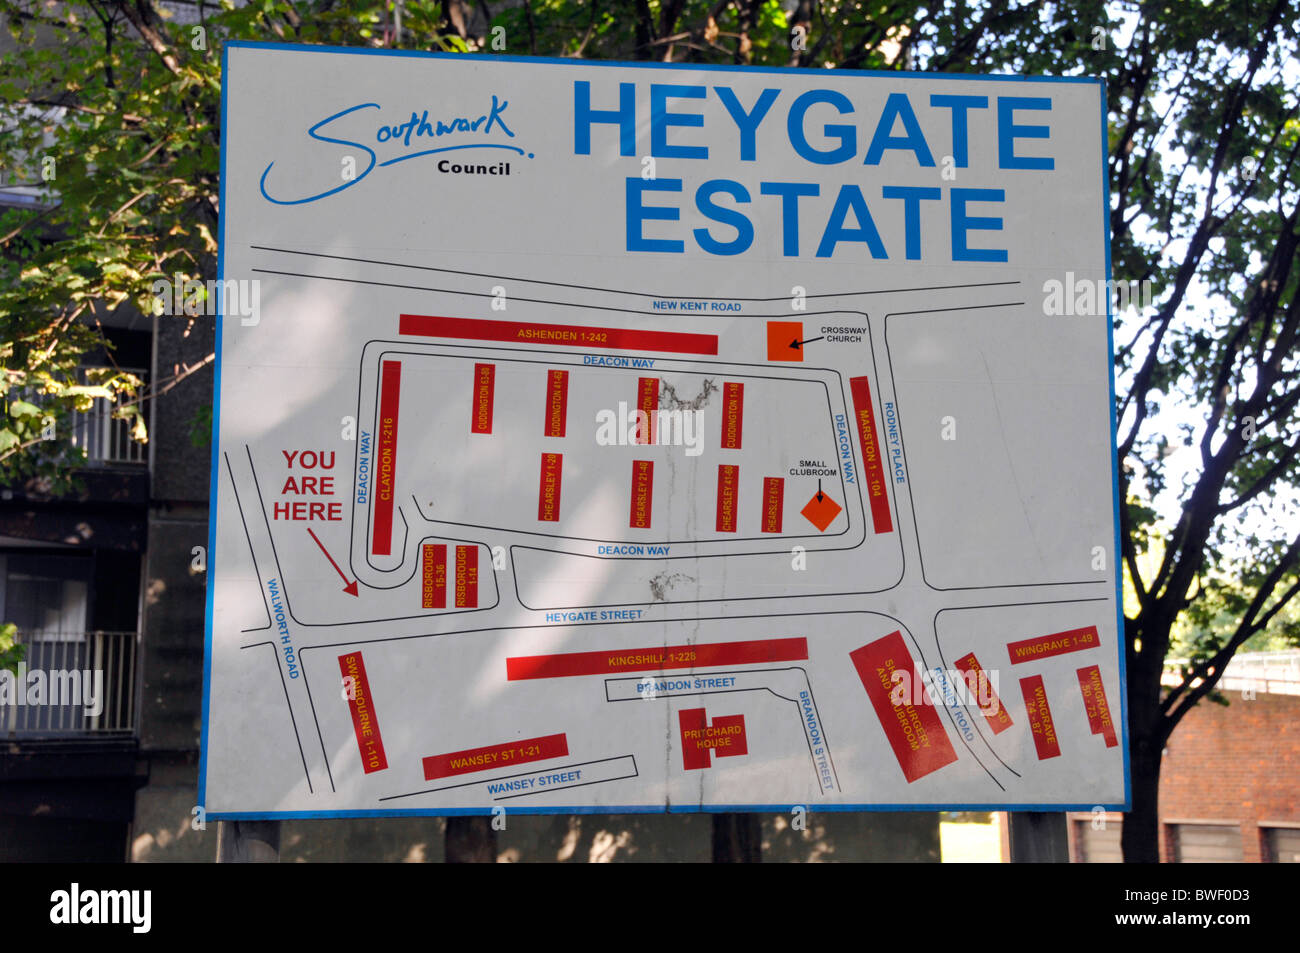 Sign & map locating various blocks of flats on infamous Heygate council housing estate Elephant & Castle - Stock Image